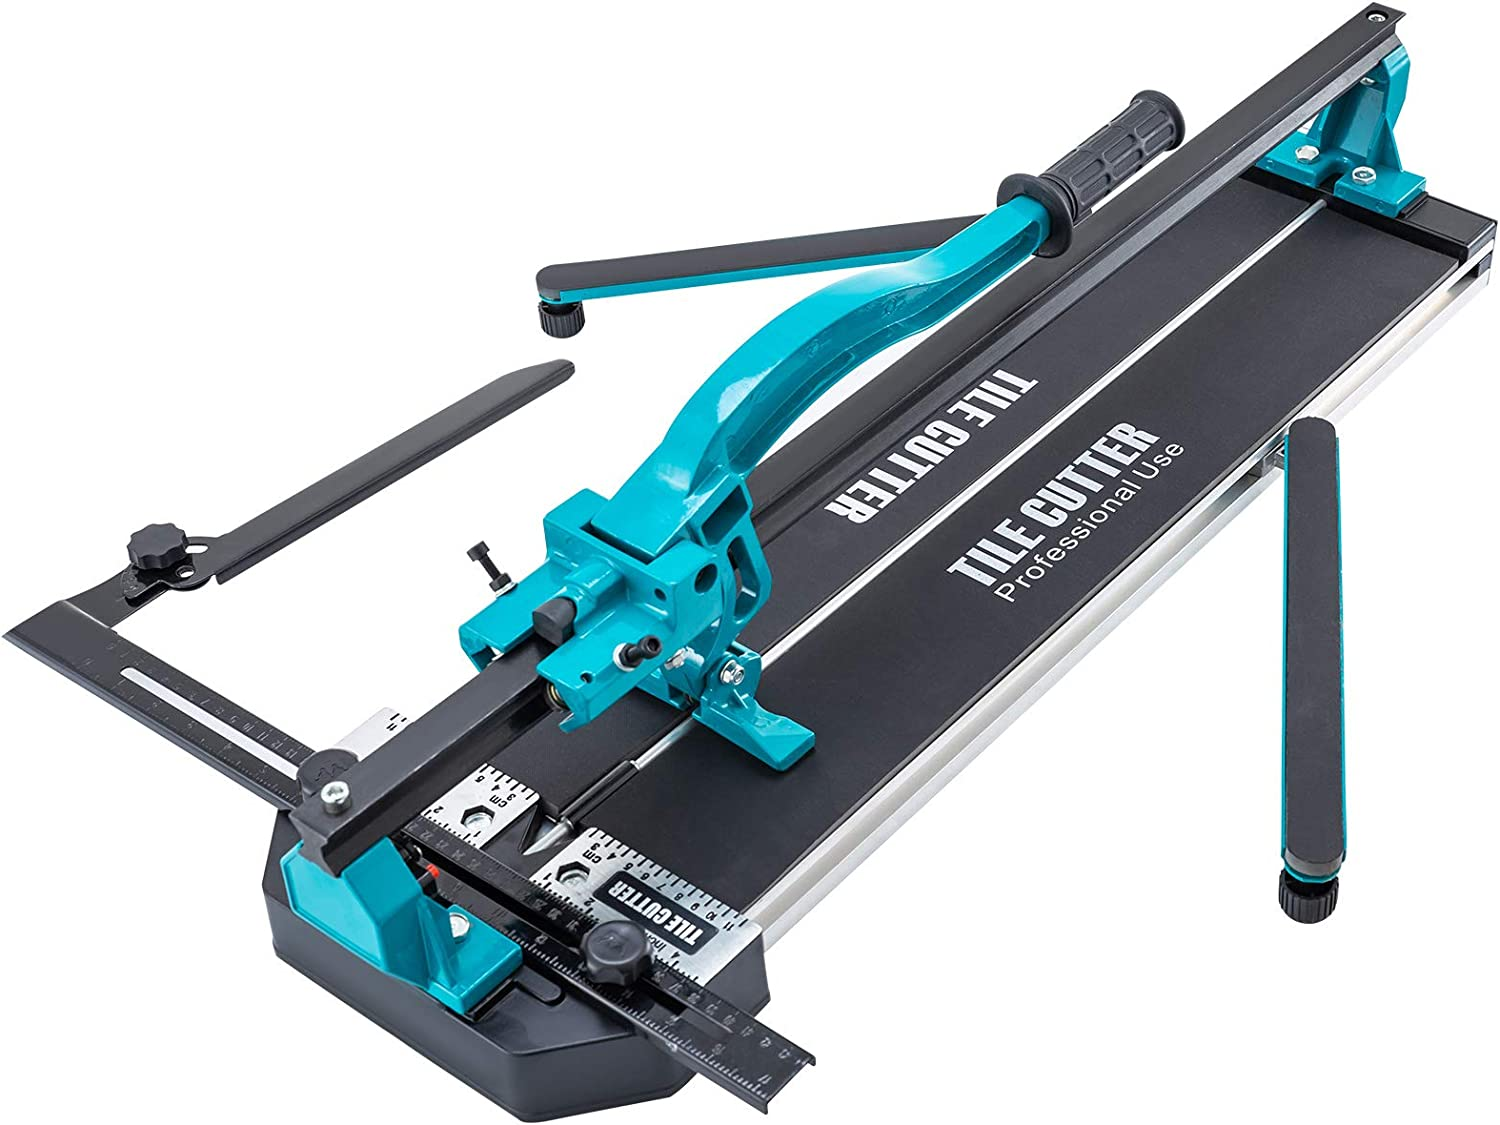 2. Mophorn Manual Tile Cutter 47- Inch